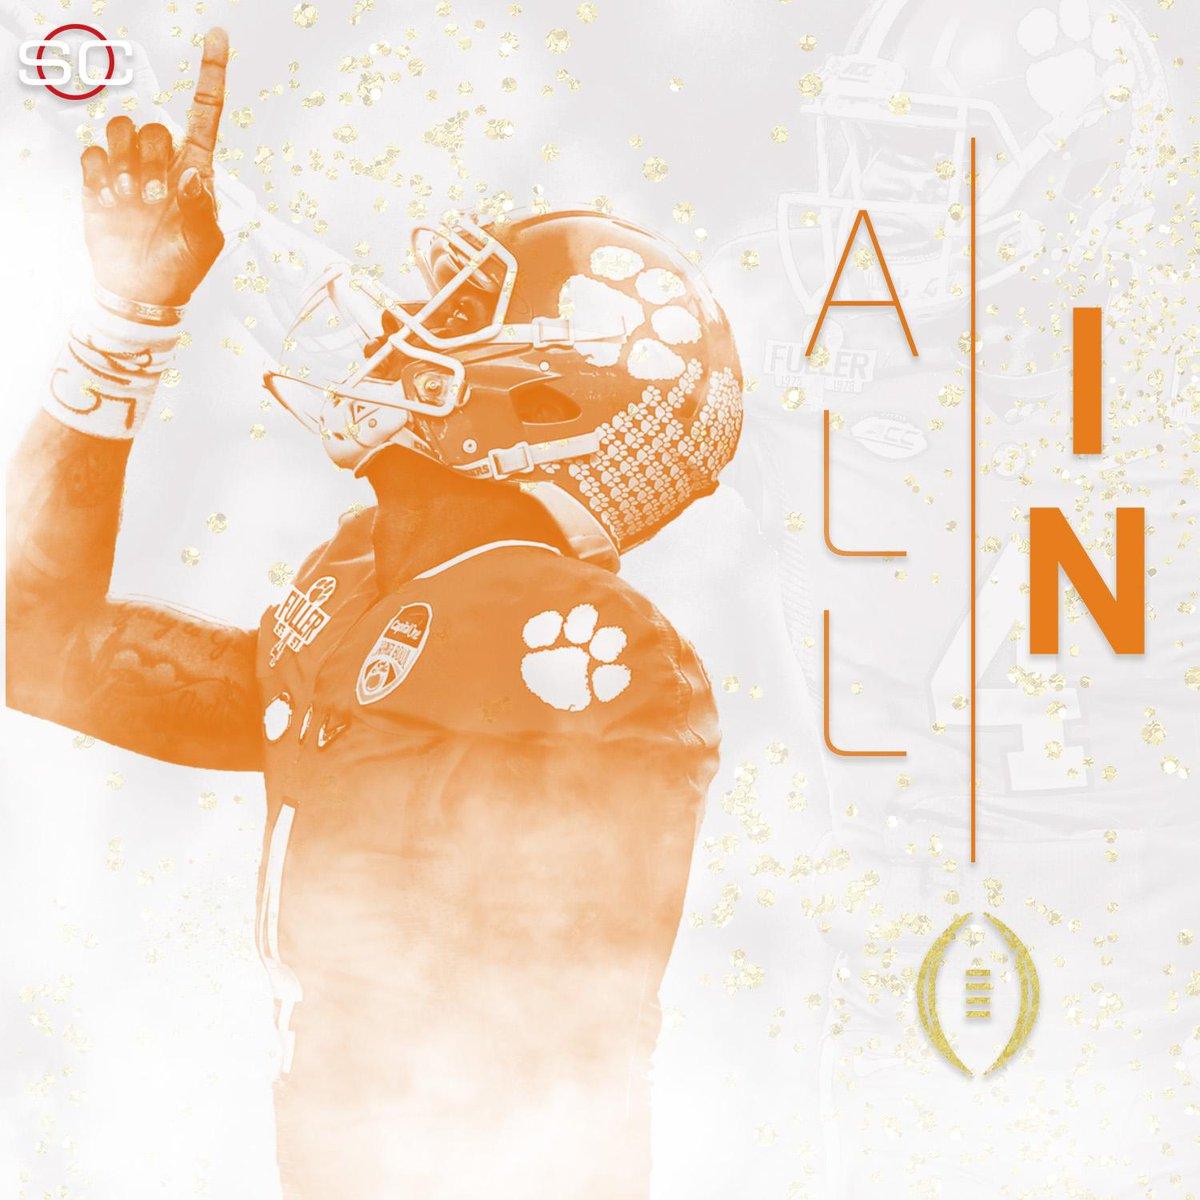 RT if you're picking Clemson to win the National Championship! #CFPVote